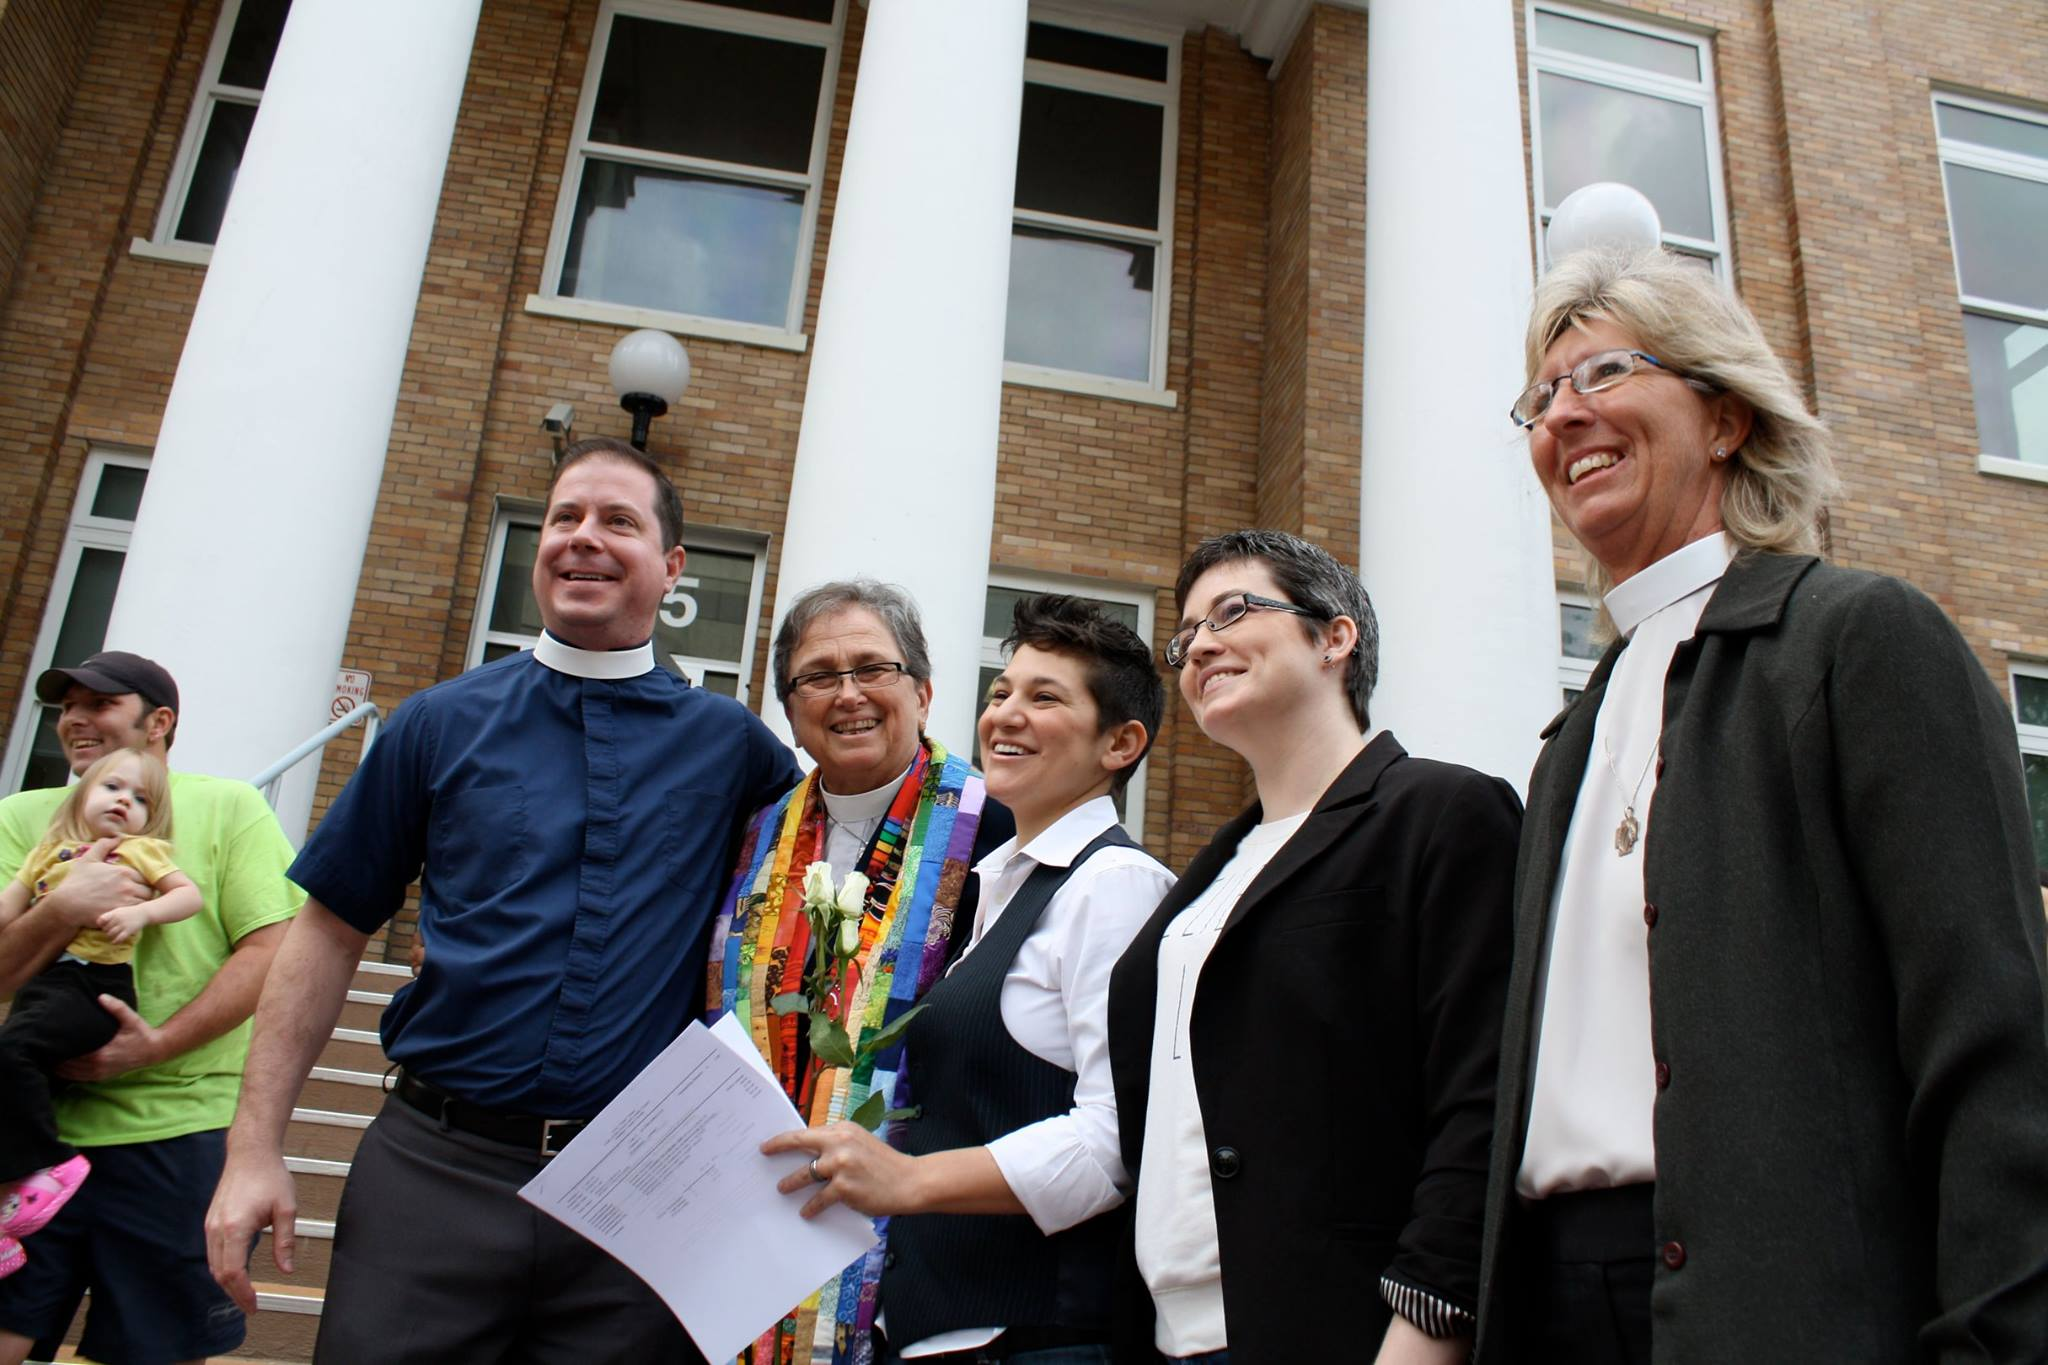 legalization-of-marriage-in-florida-by-linda-brenner